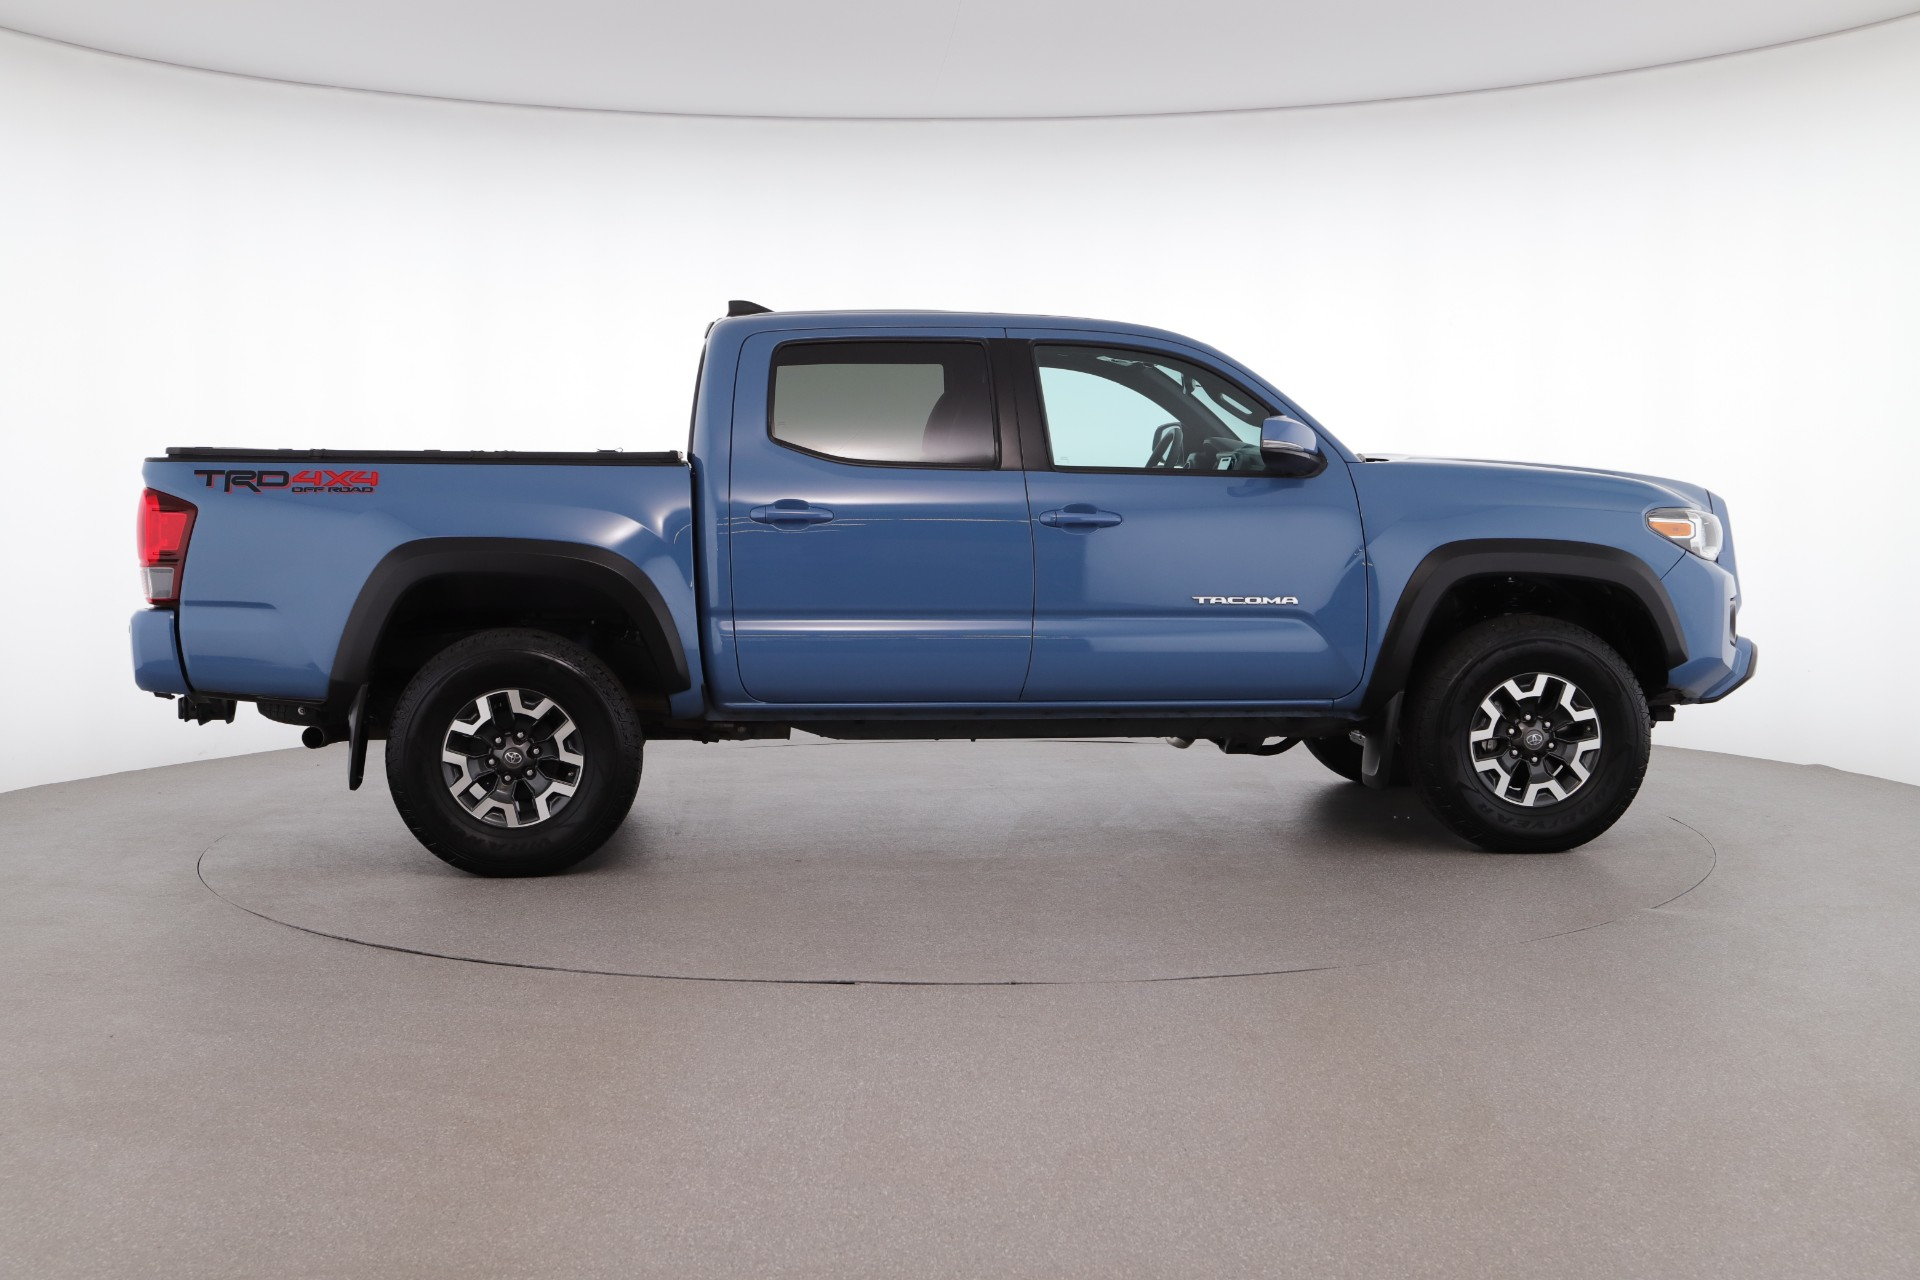 Best Pickup Trucks: The Reviews You've Been Searching For